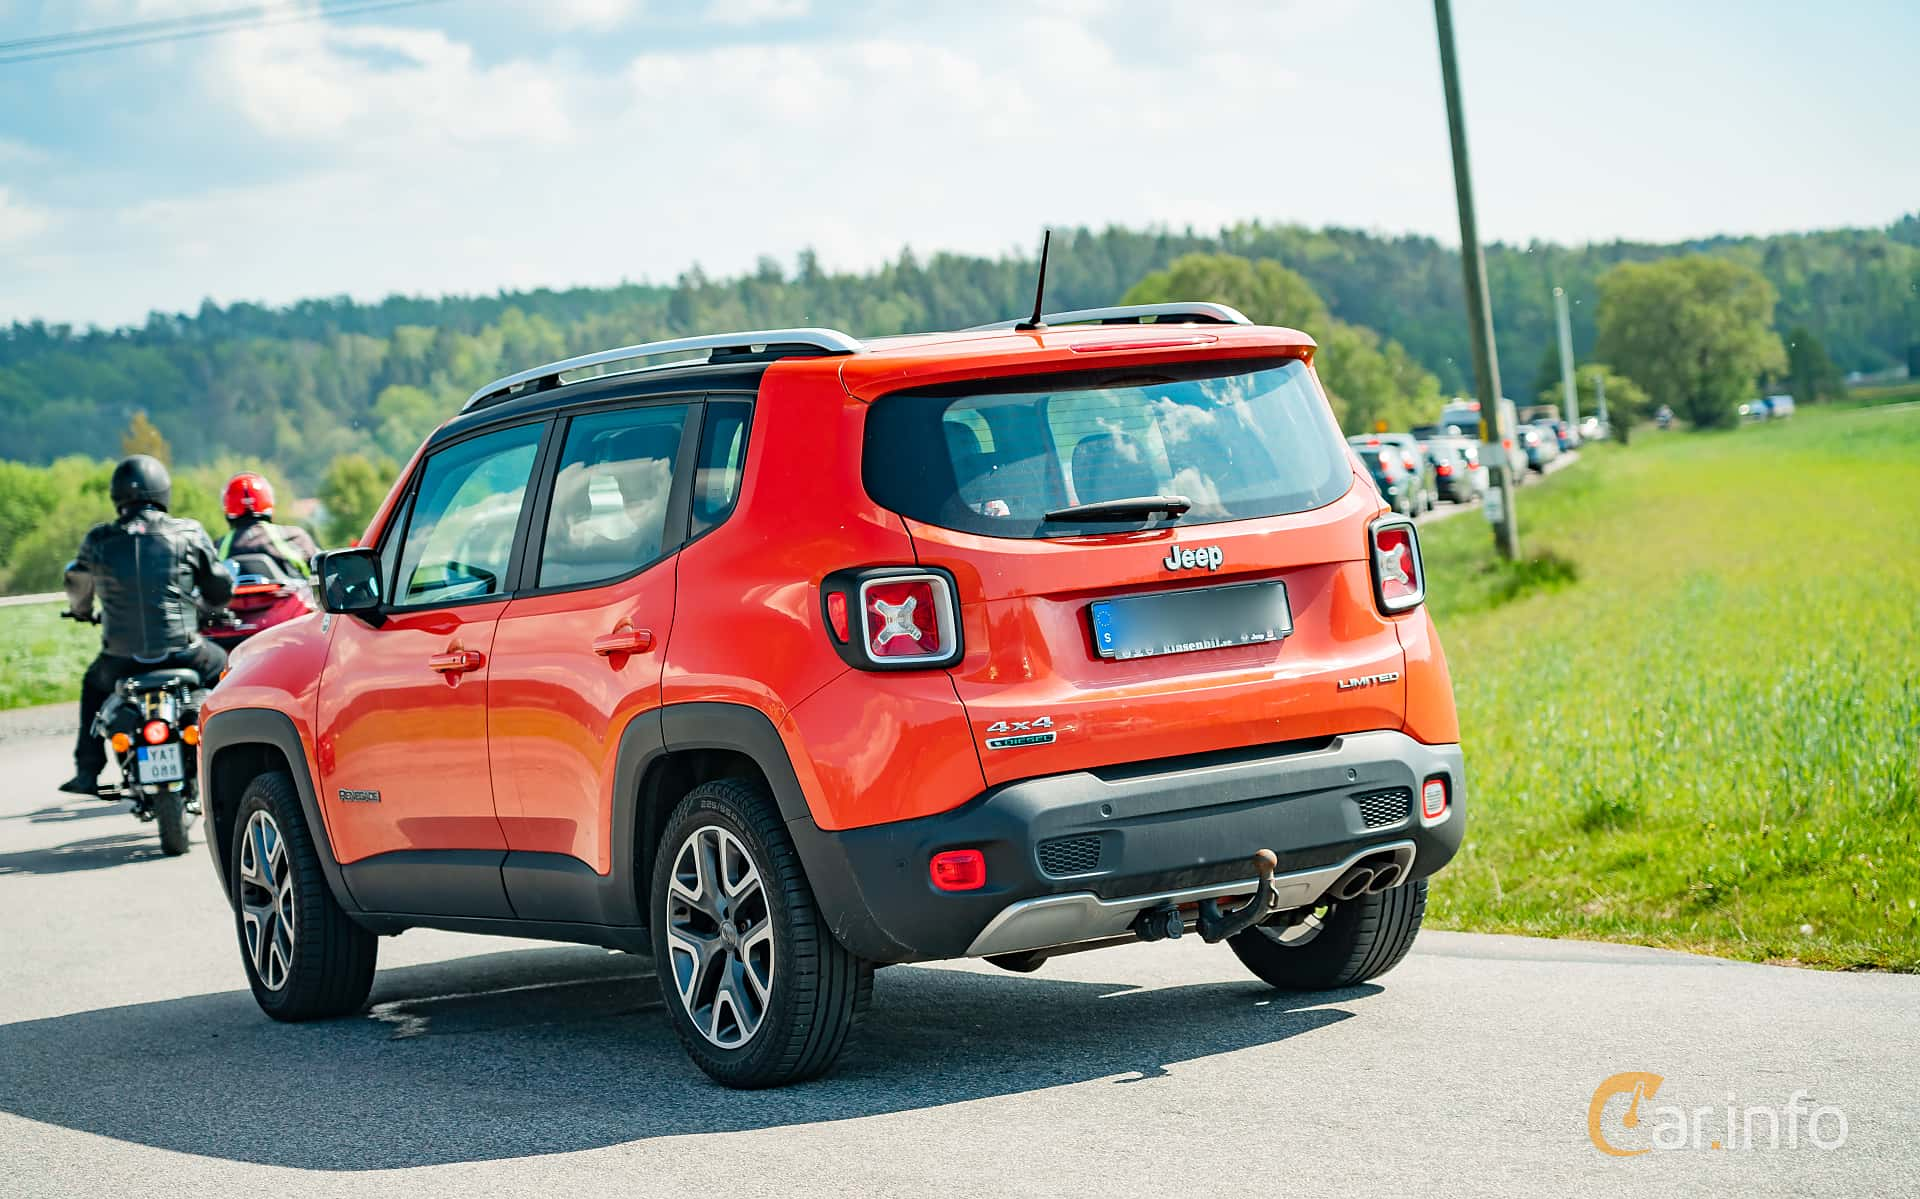 Jeep Renegade 2.0 CRD 4WD Manual, 140hp, 2015 at Tjolöholm Classic Motor 2019